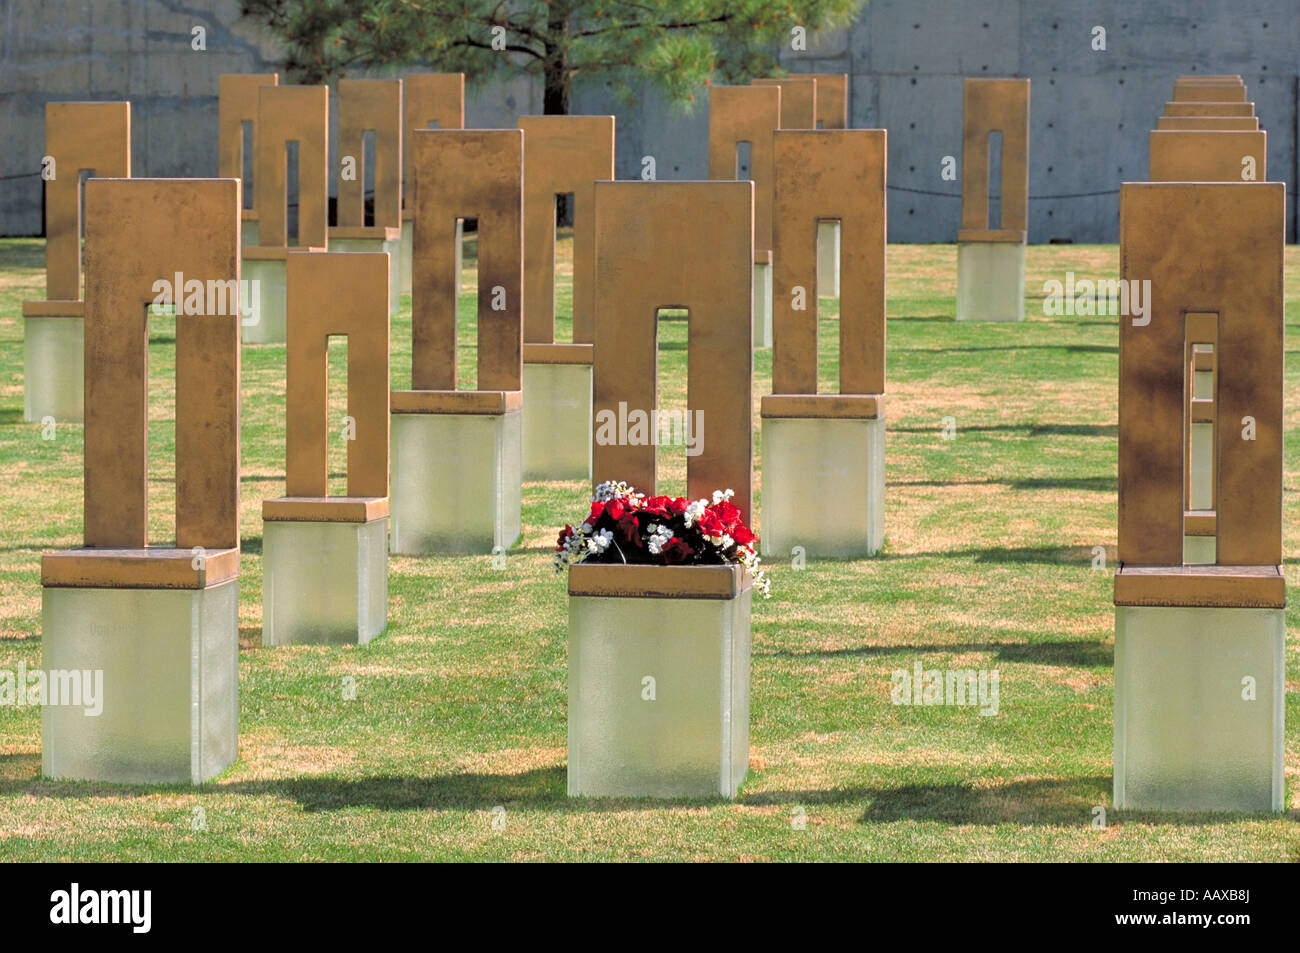 Elk279 1021 Oklahoma Oklahoma City Oklahoma City National Memorial Field of Chairs Stock Photo